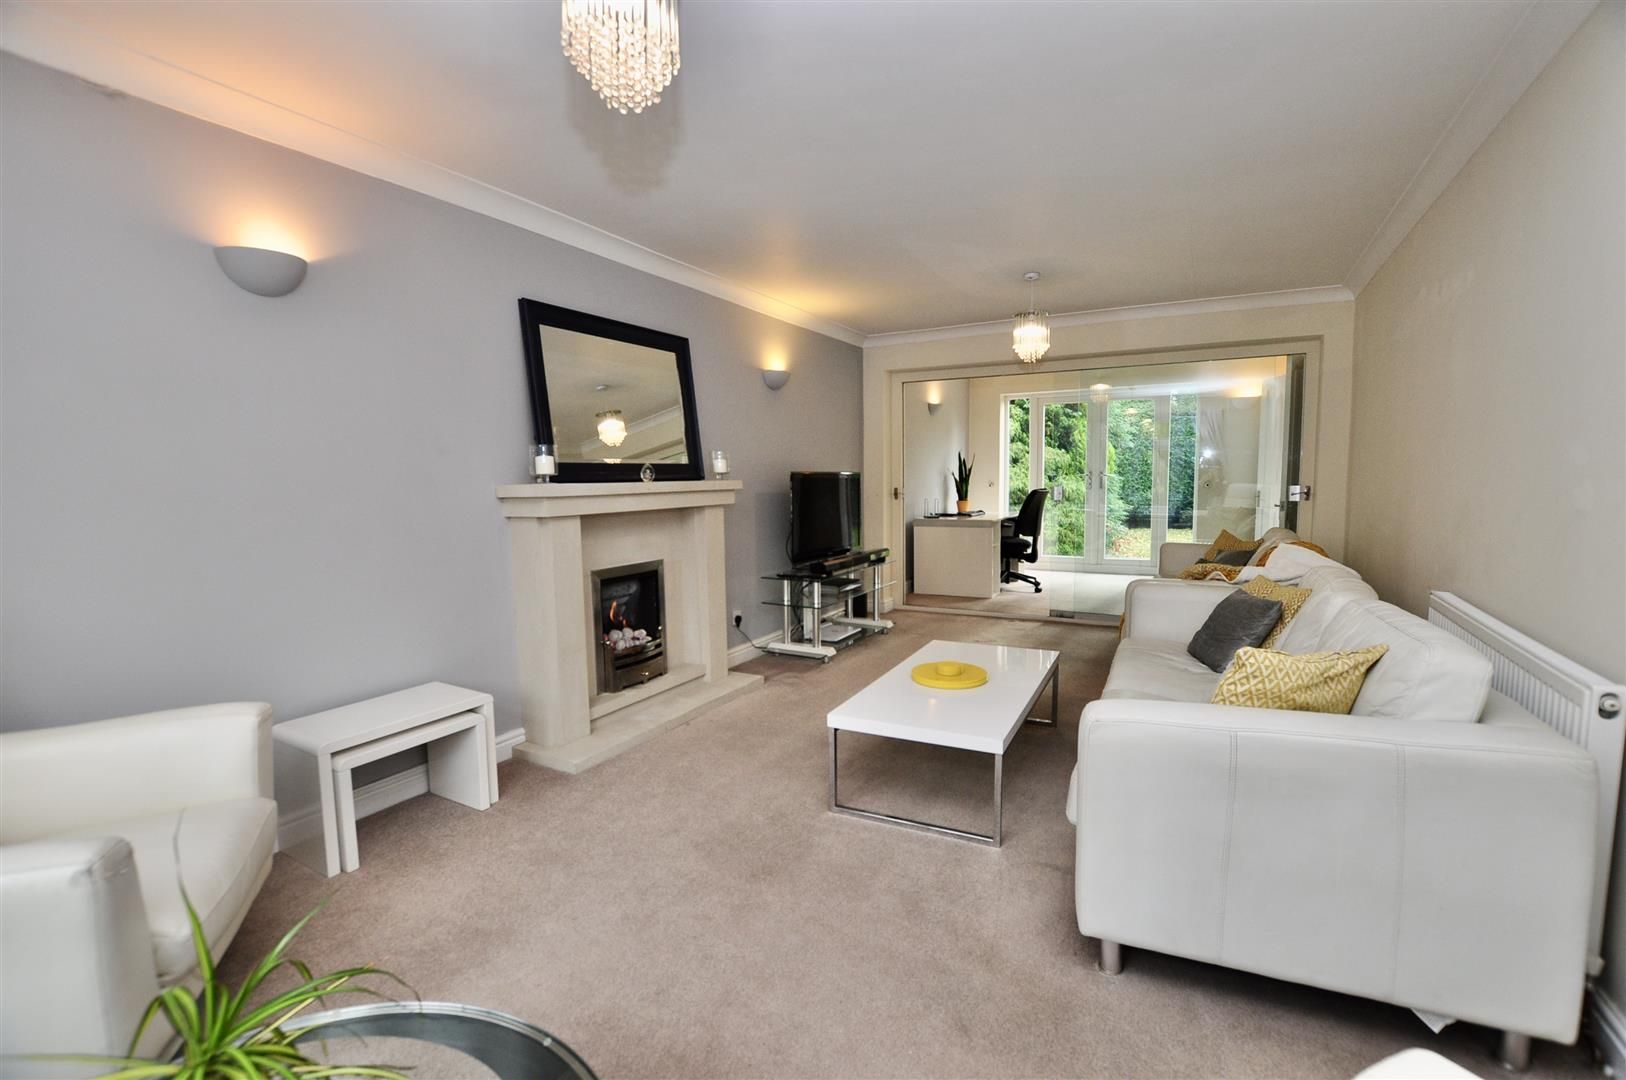 4 bed house for sale in Hagley  - Property Image 15